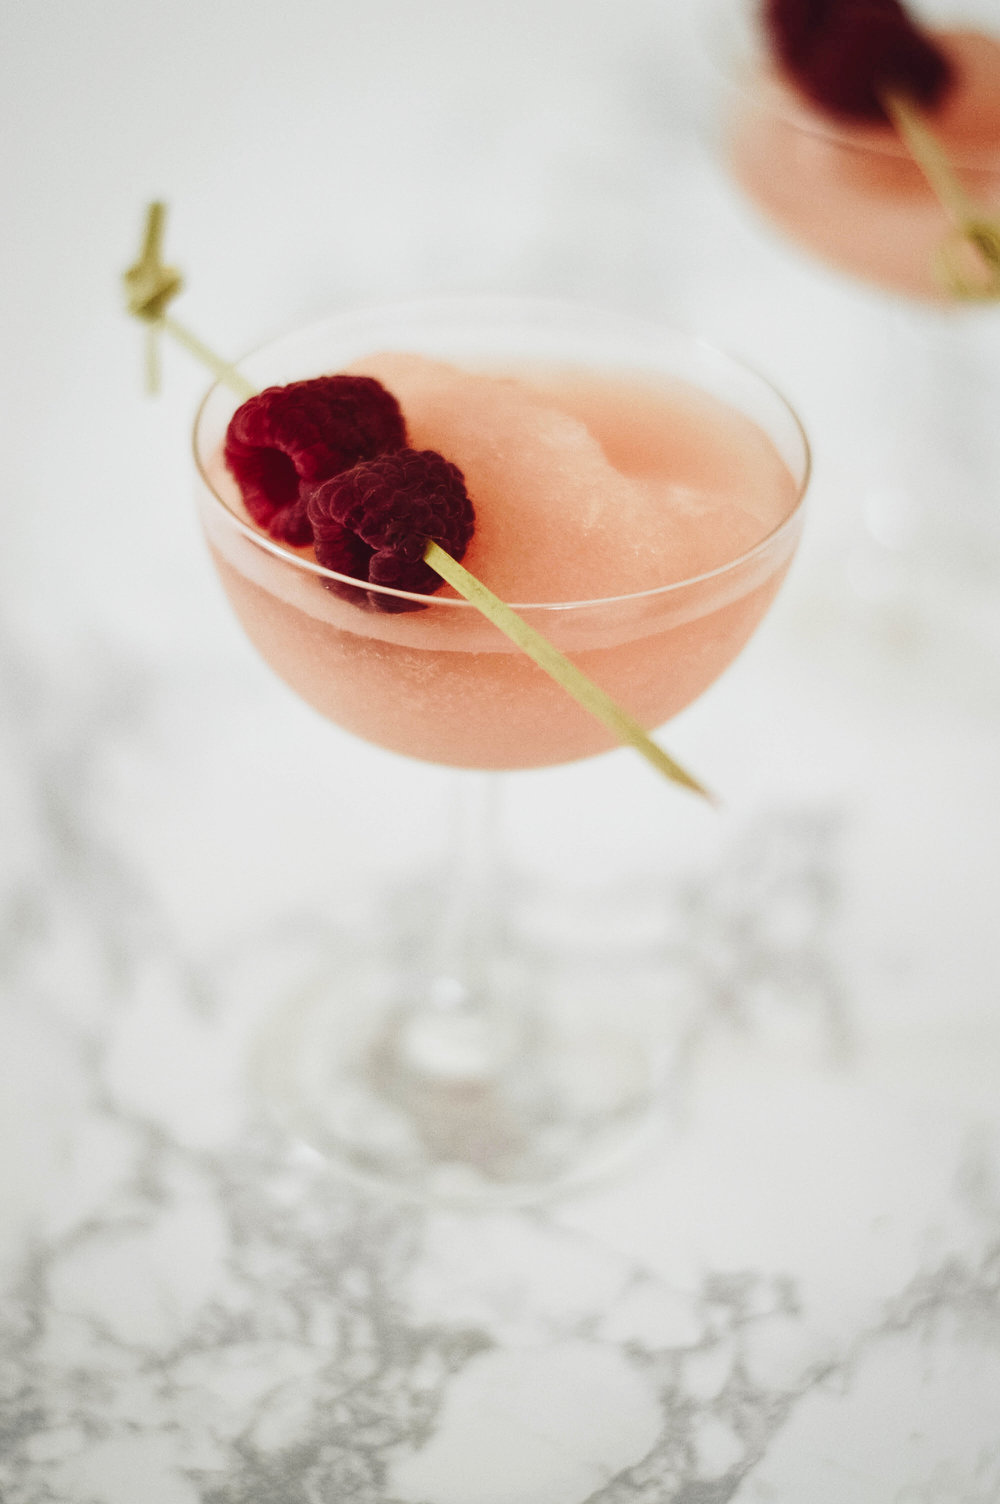 HOW-TO FROSE  - - 1 Bottle Rose- 2 1/2 oz Lemon Juice- 1/2 C Sugar- 1/2 C Water- RaspberriesStart by pouring a bottle of rose into a ice cube tray, keep in mind that this will need to be done in advance! While the rose is chilling, start the simple syrup. In a sauce pan combine equal parts sugar and water. For this recipe I opted to do a 1/2 C of both. Heat until sugar is dissolved. Once rose has chilled, combine with simple syrup, 2 1/2 oz. lemon juice, rose cubes, and blend. For a slushier beverage you can also include additional ice. Serve with fresh berry garnish and enjoy!